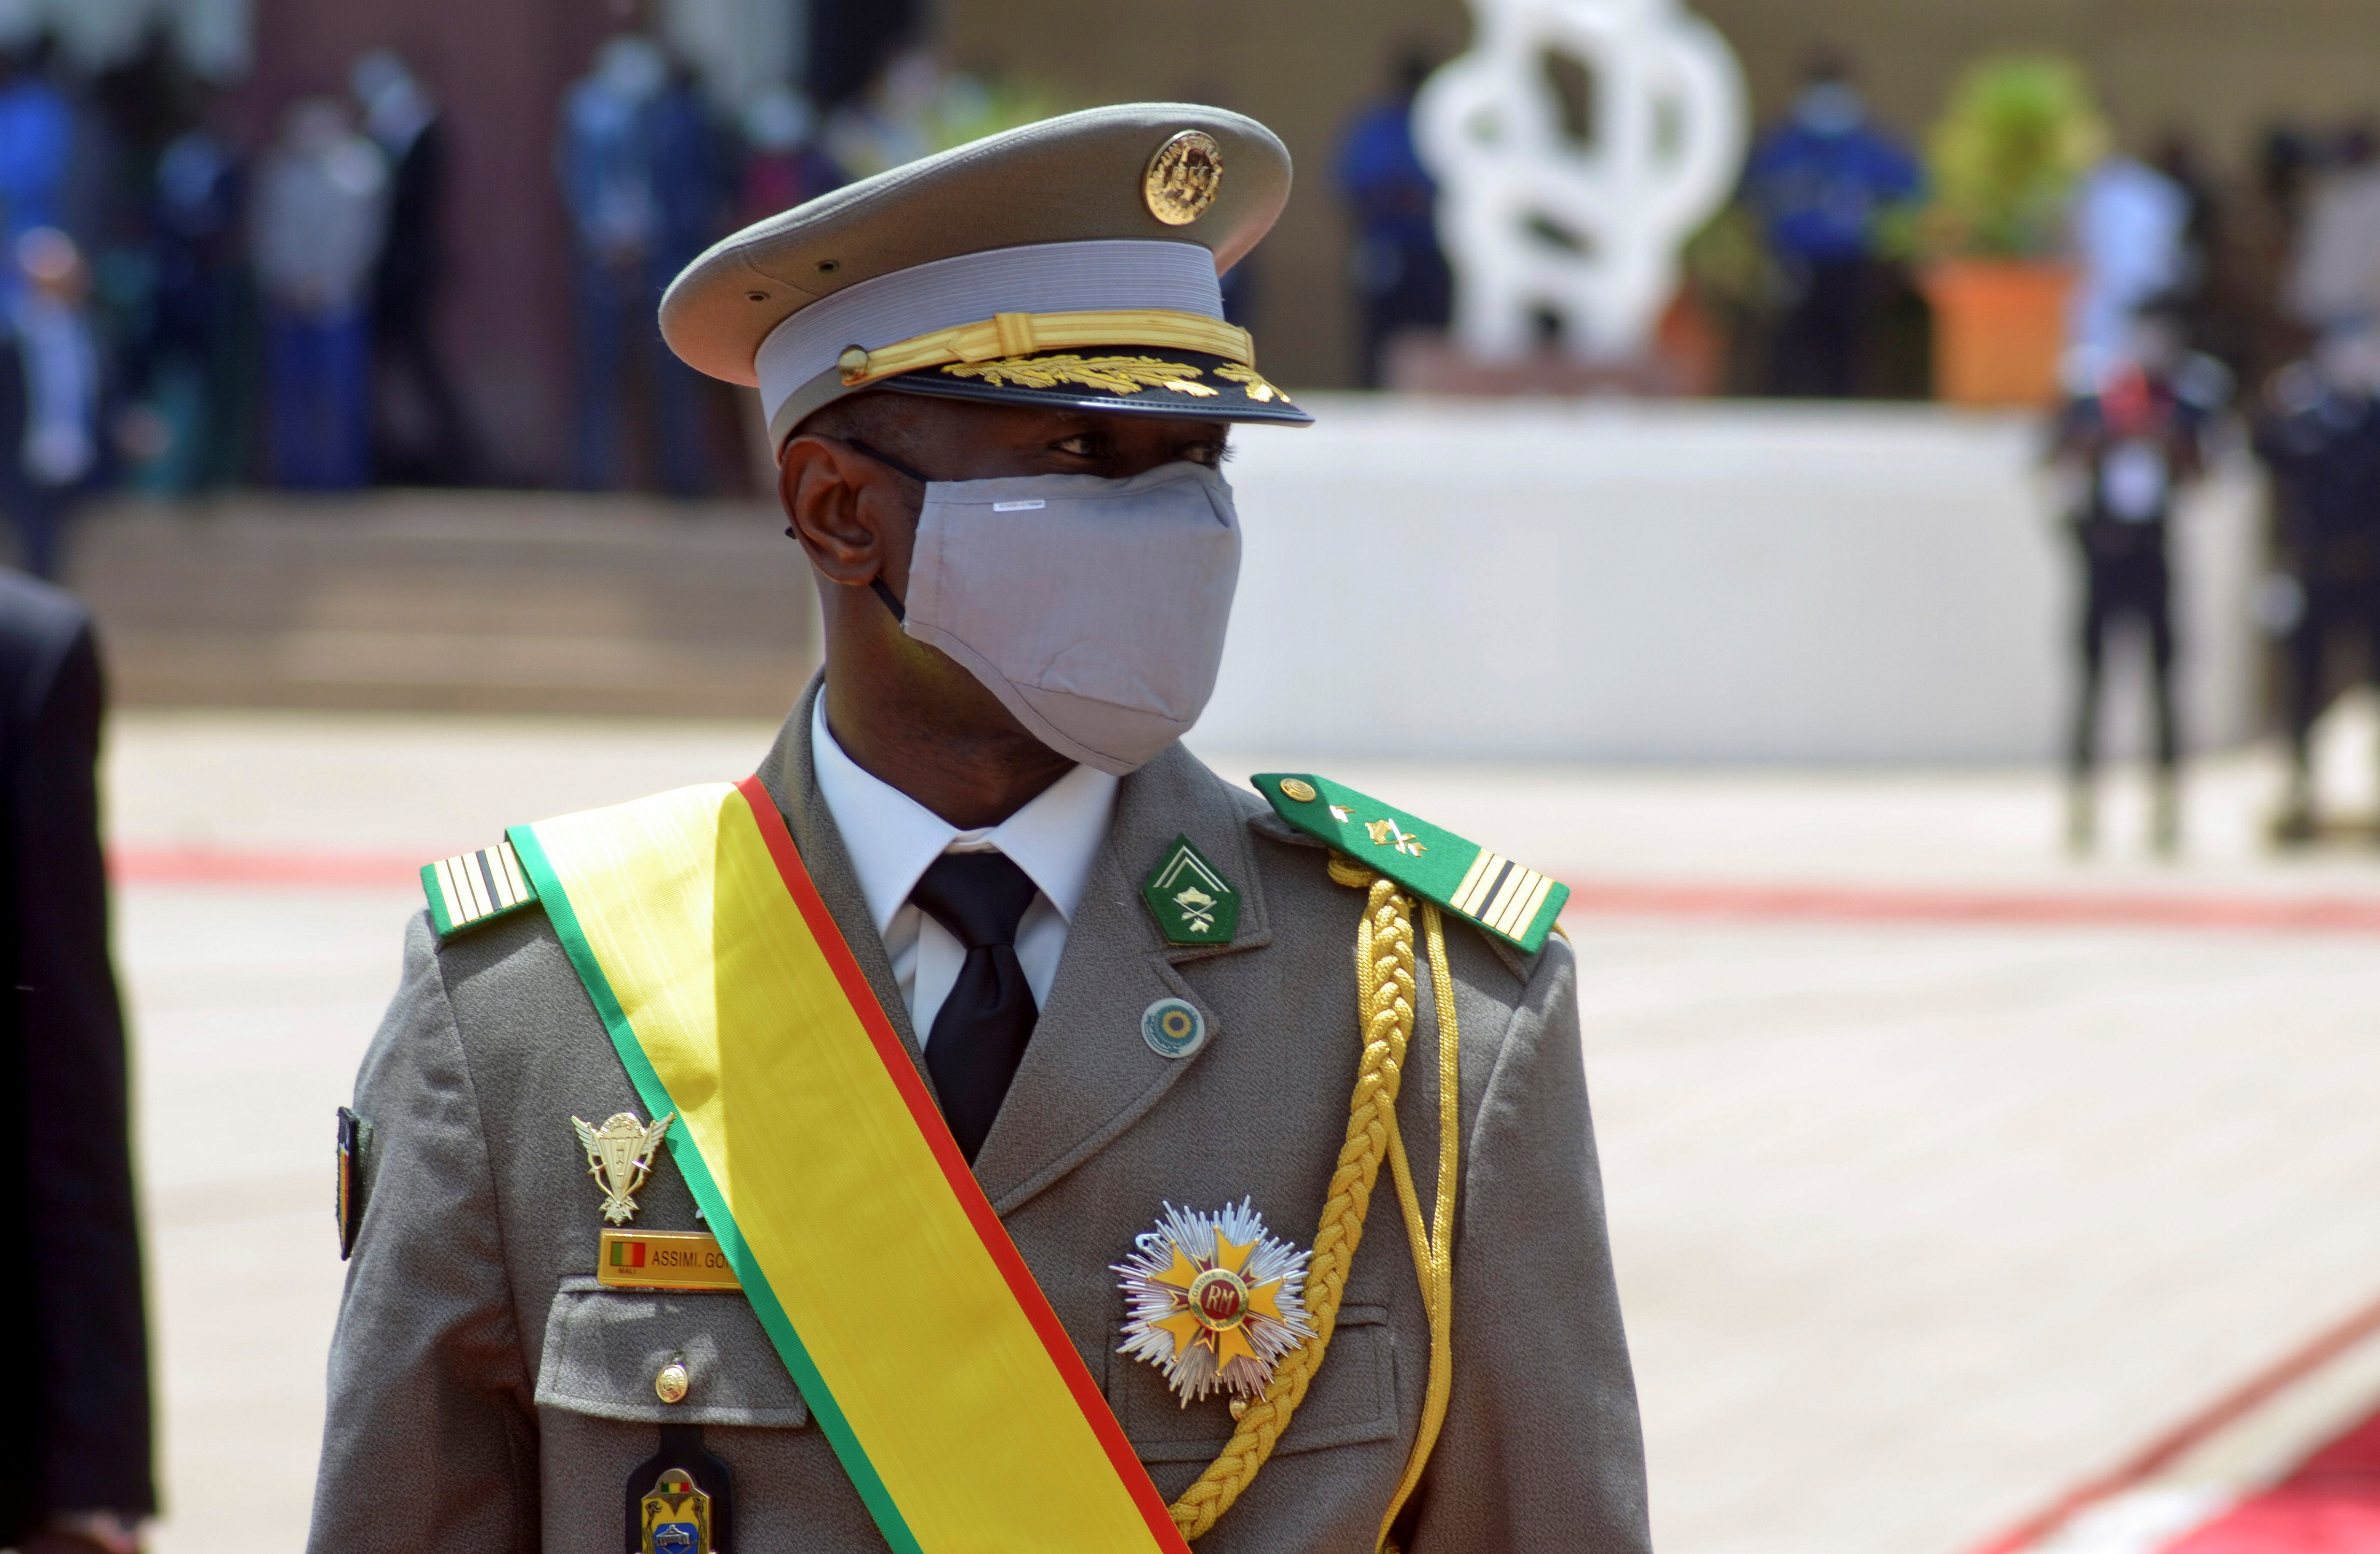 Colonel Assimi Goita, leader of two military coups and new interim president, walks during his inauguration ceremony in Bamako, Mali June 7, 2021. REUTERS/Amadou Keita